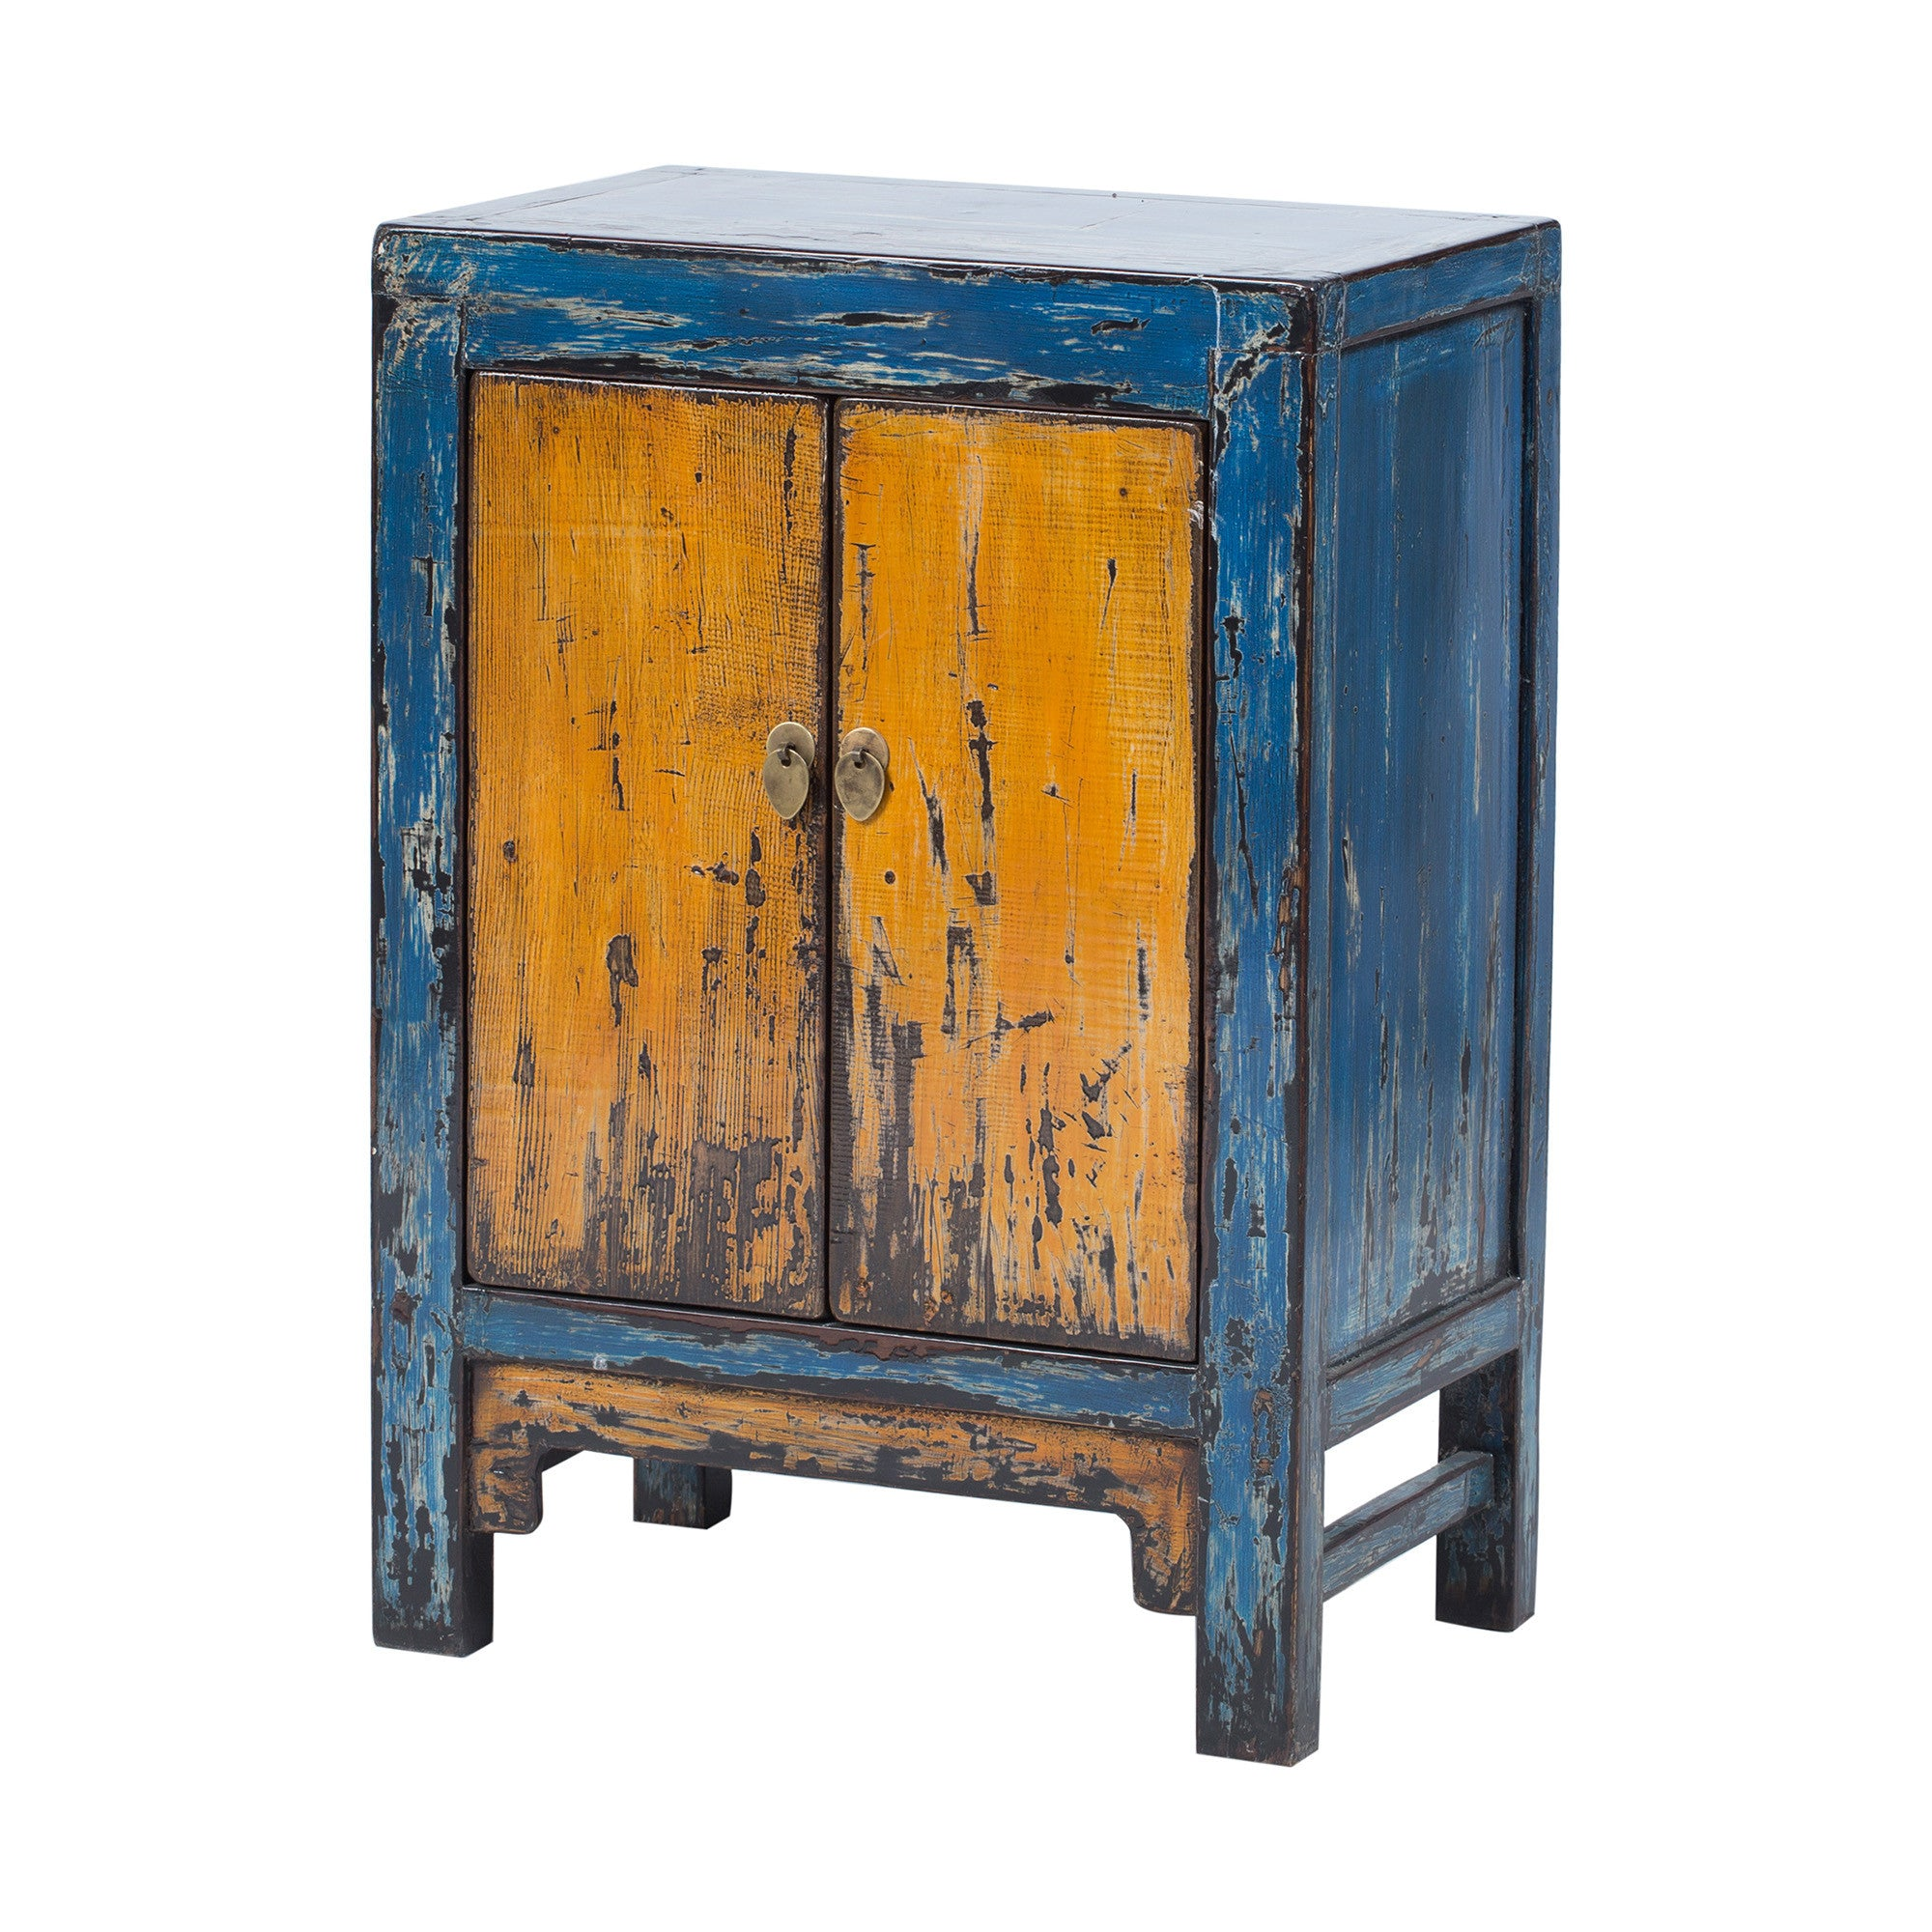 Painted blue yellow 2-doors Cabinet